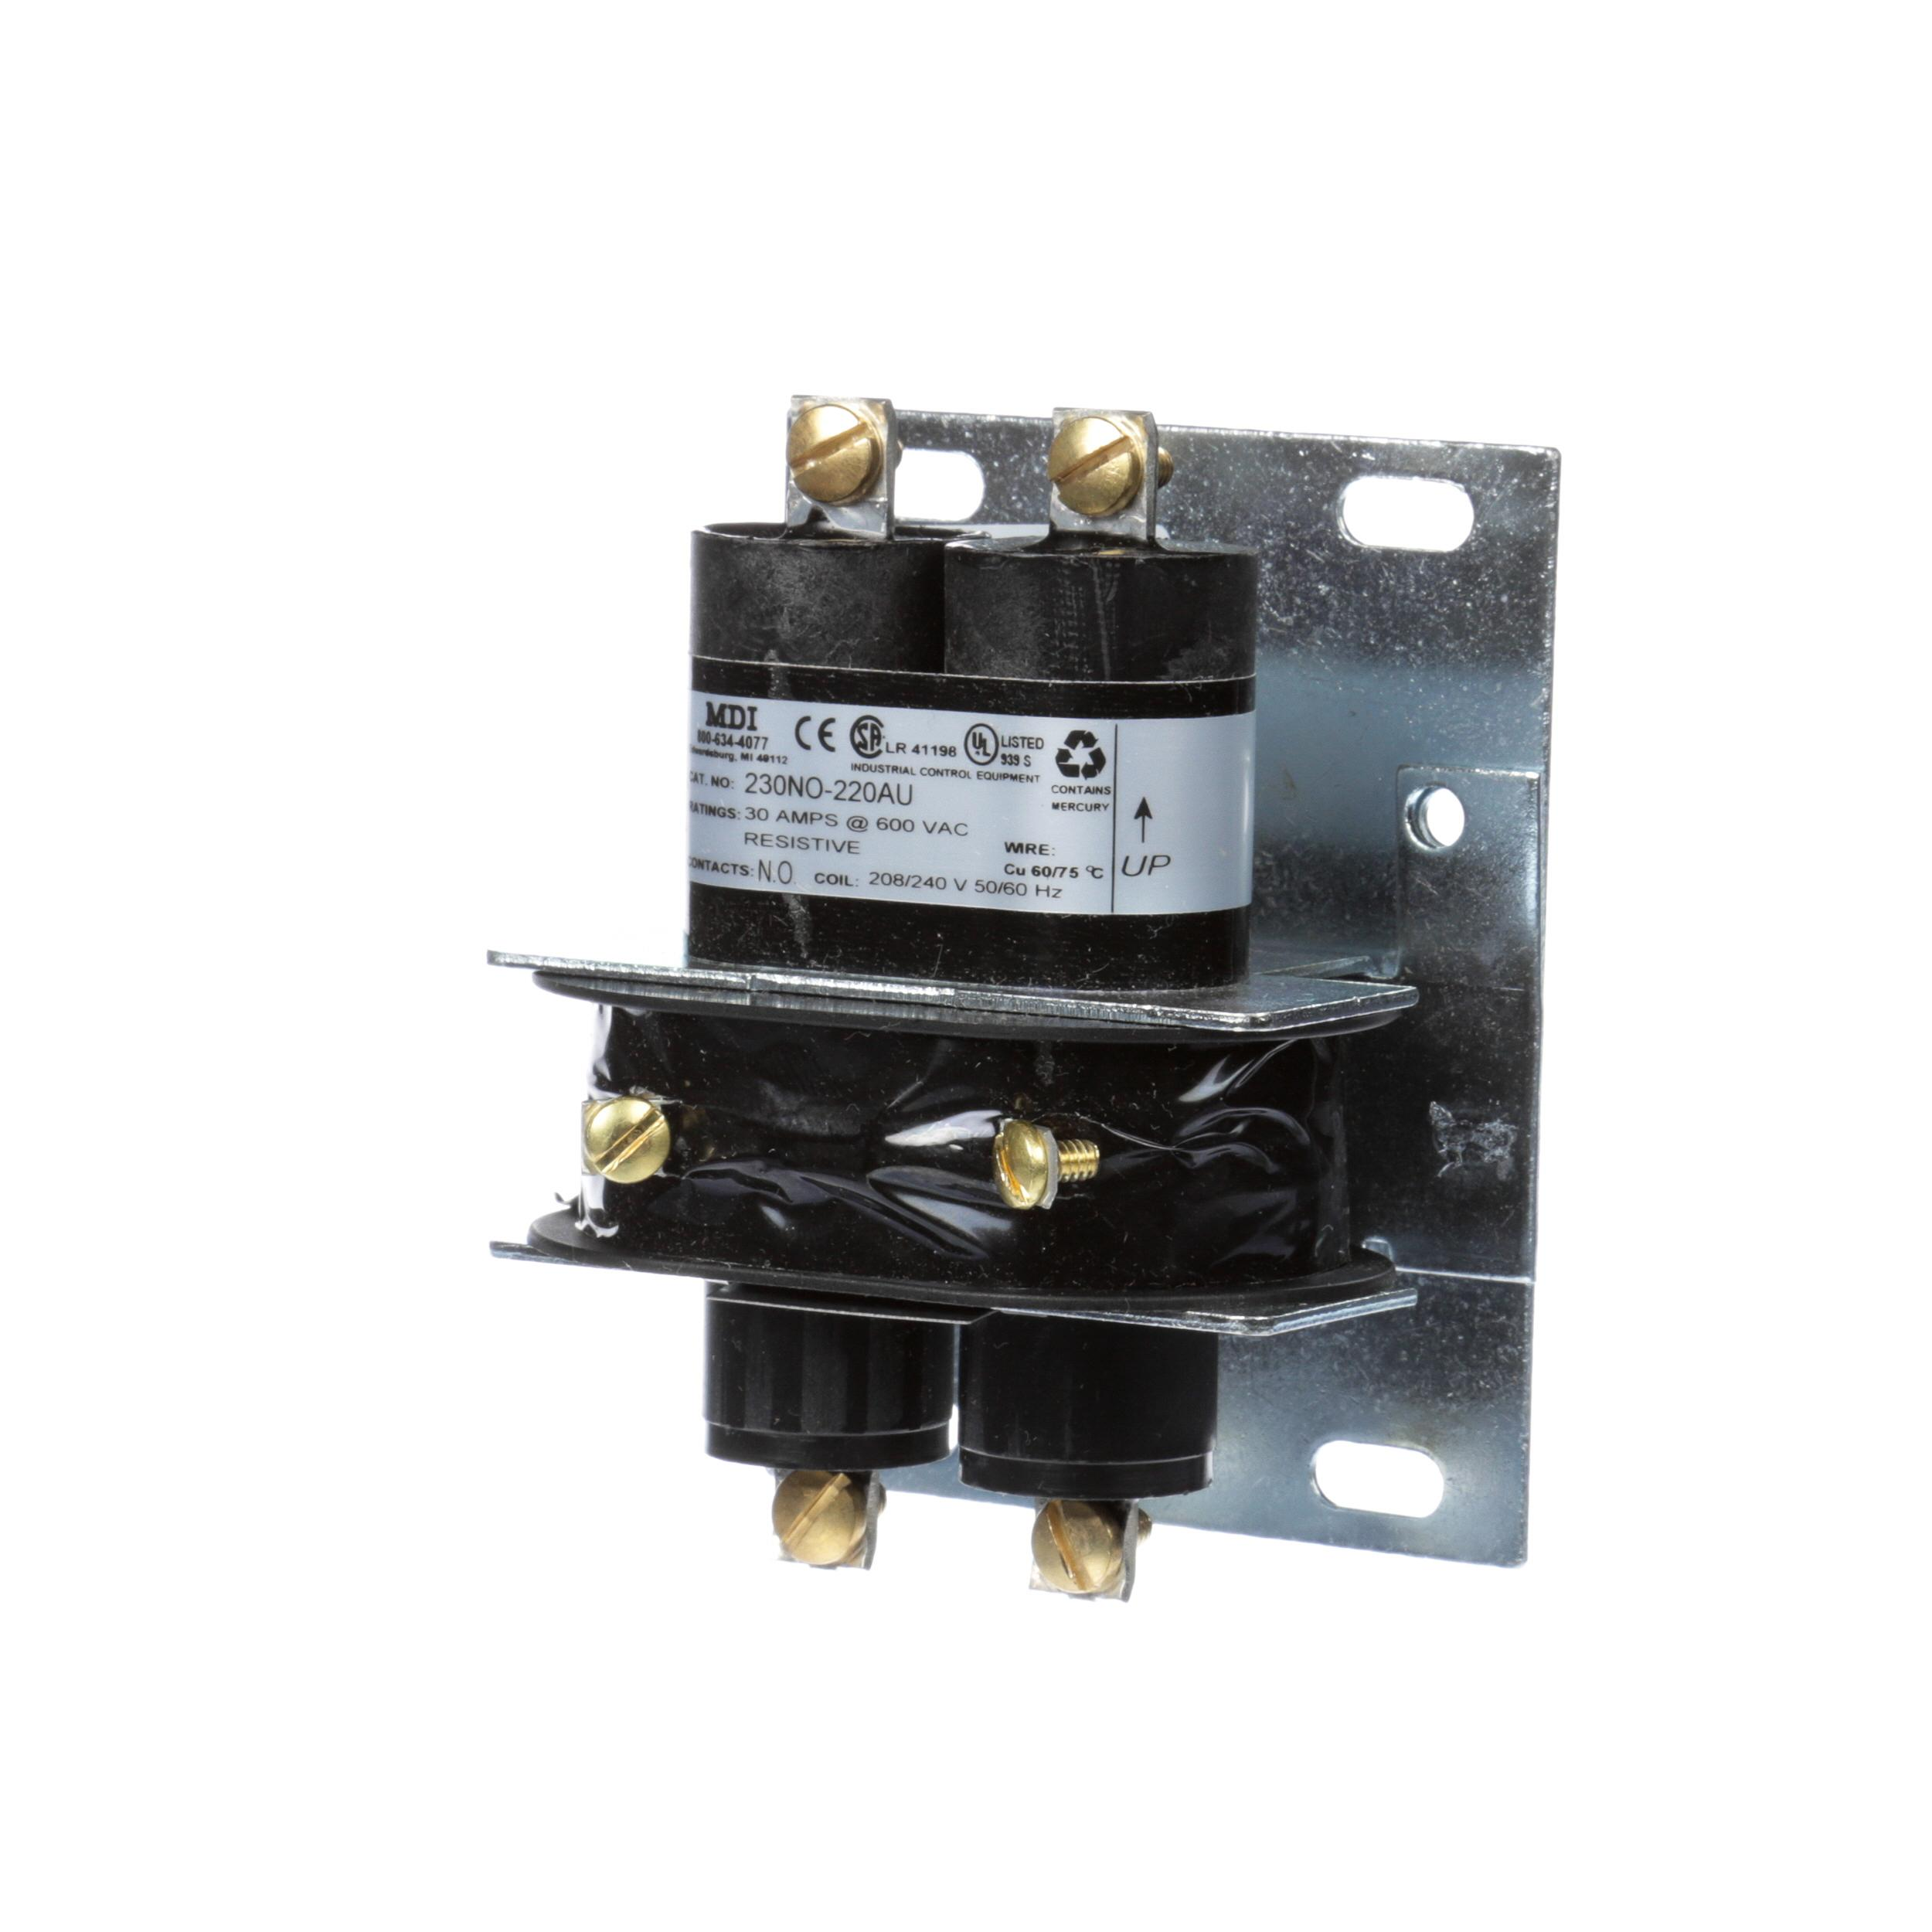 LINCOLN MANUFACTURING CONTACTOR RELAY